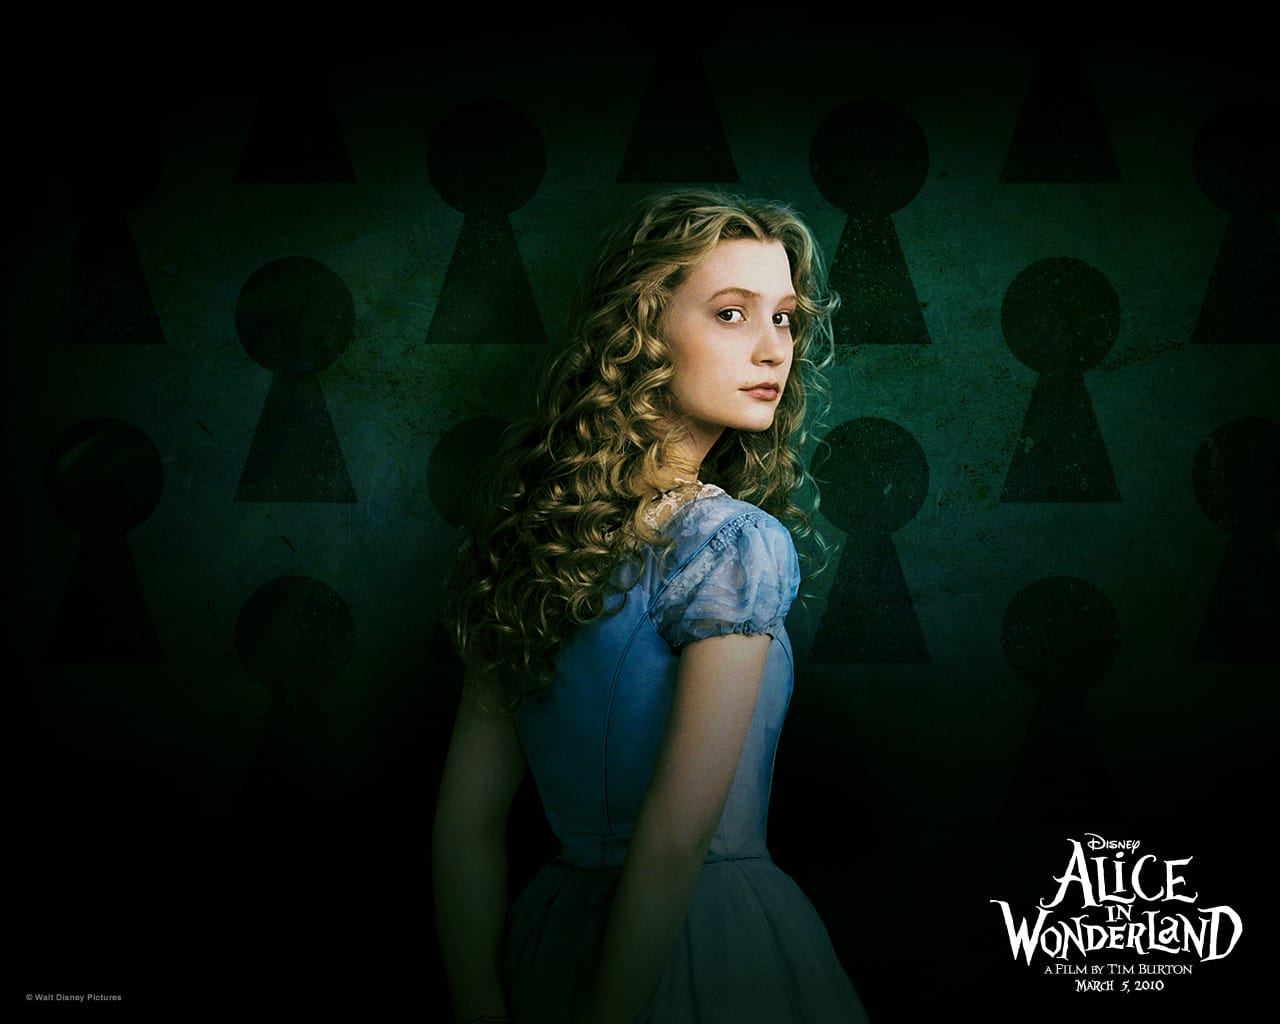 Alice in Wonderland Wallpaper: Alice